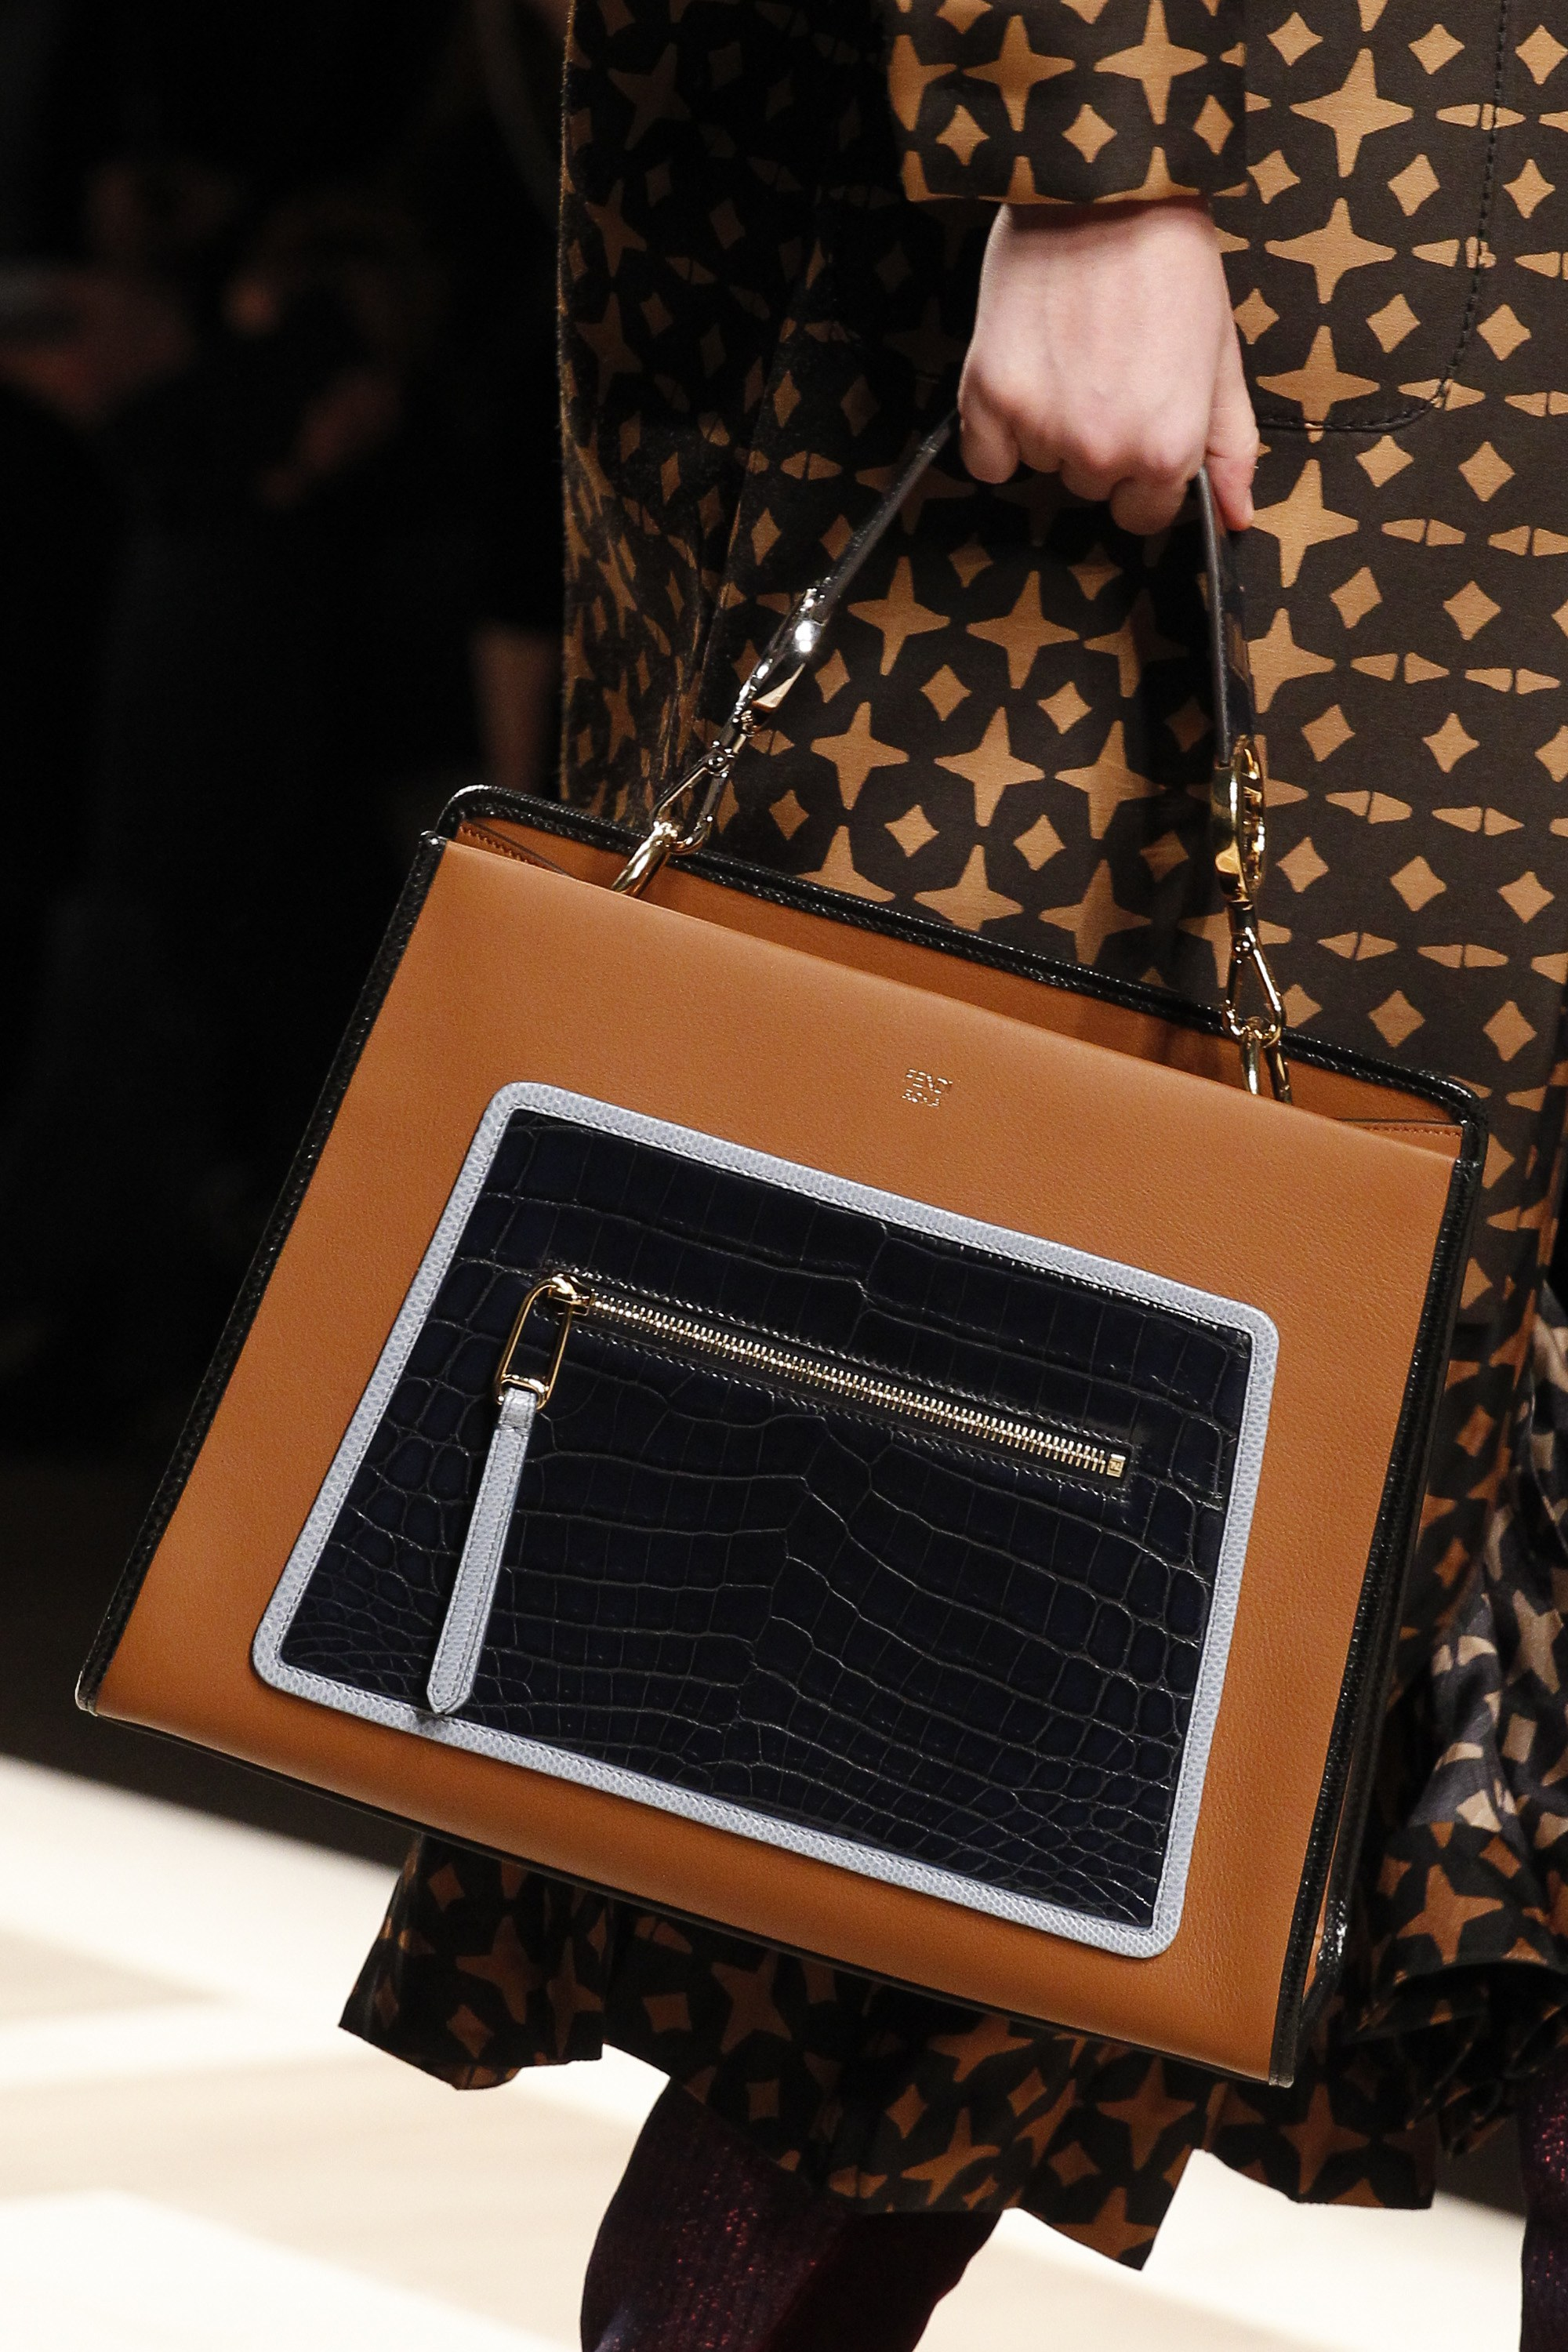 fendi fall  winter 2017 runway bag collection